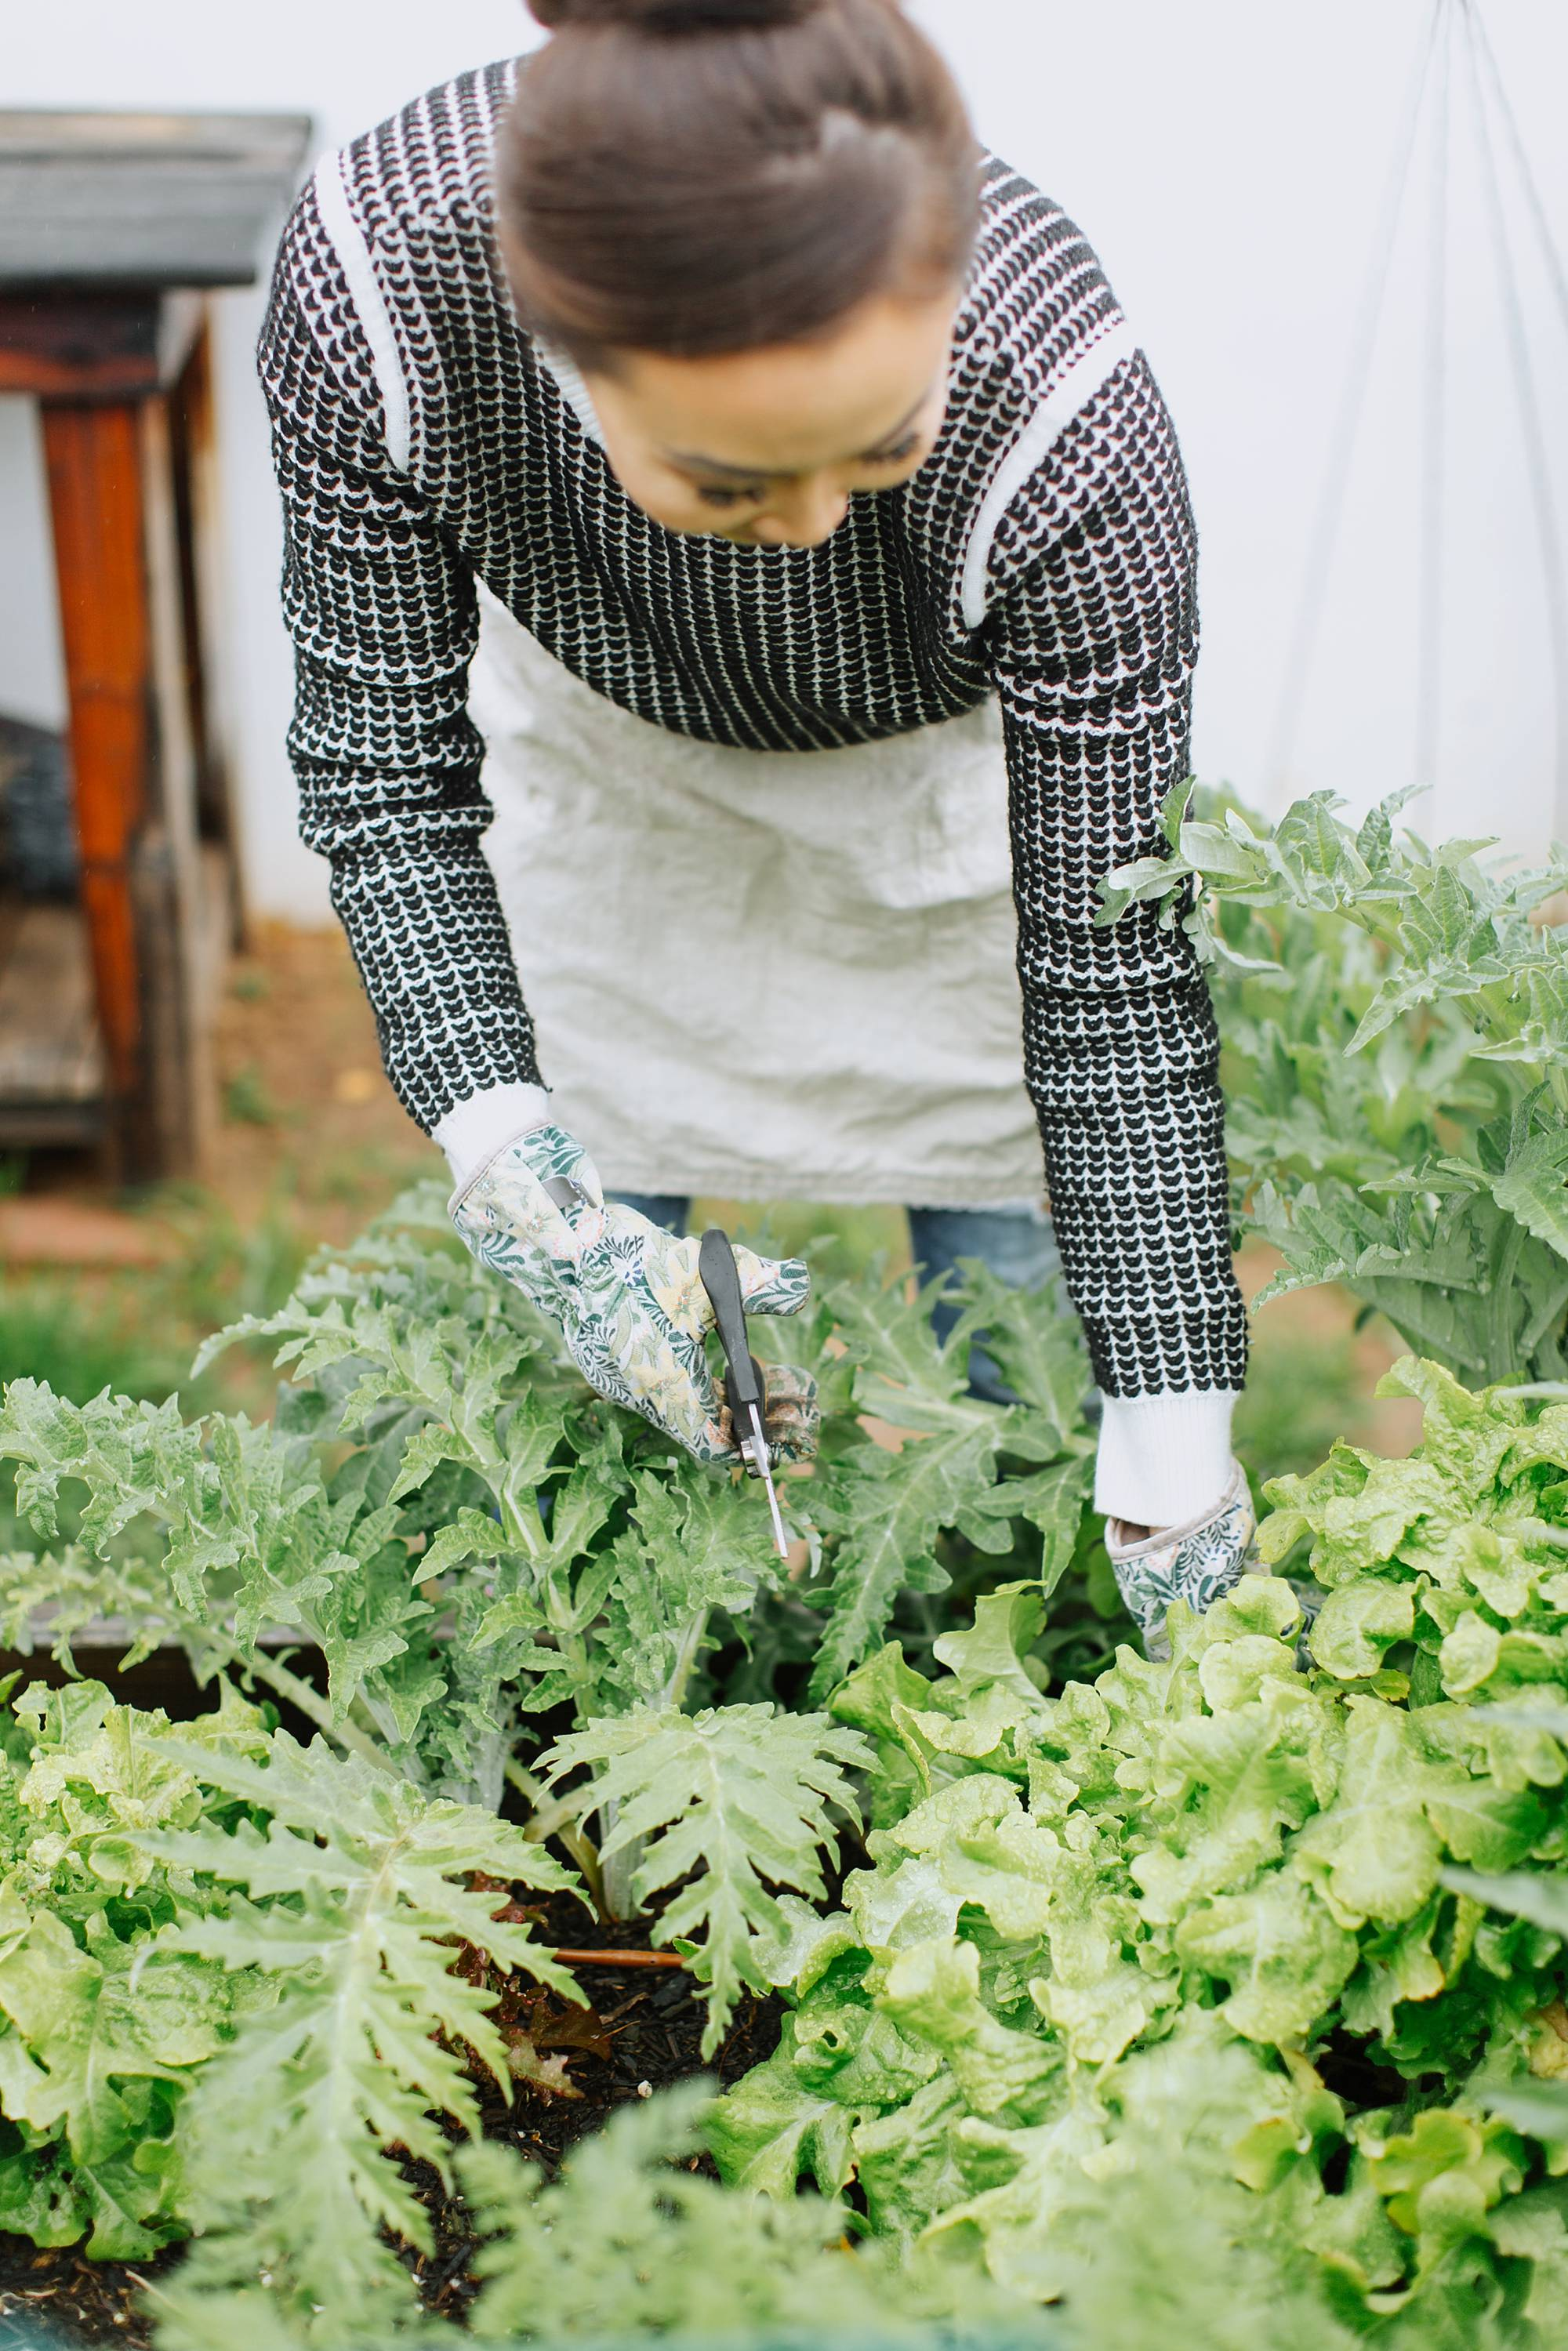 cutting lettuce in the garden beds Diana Elizabeth blog - www.dianaelizabethblog.com #garden #gardenbeds